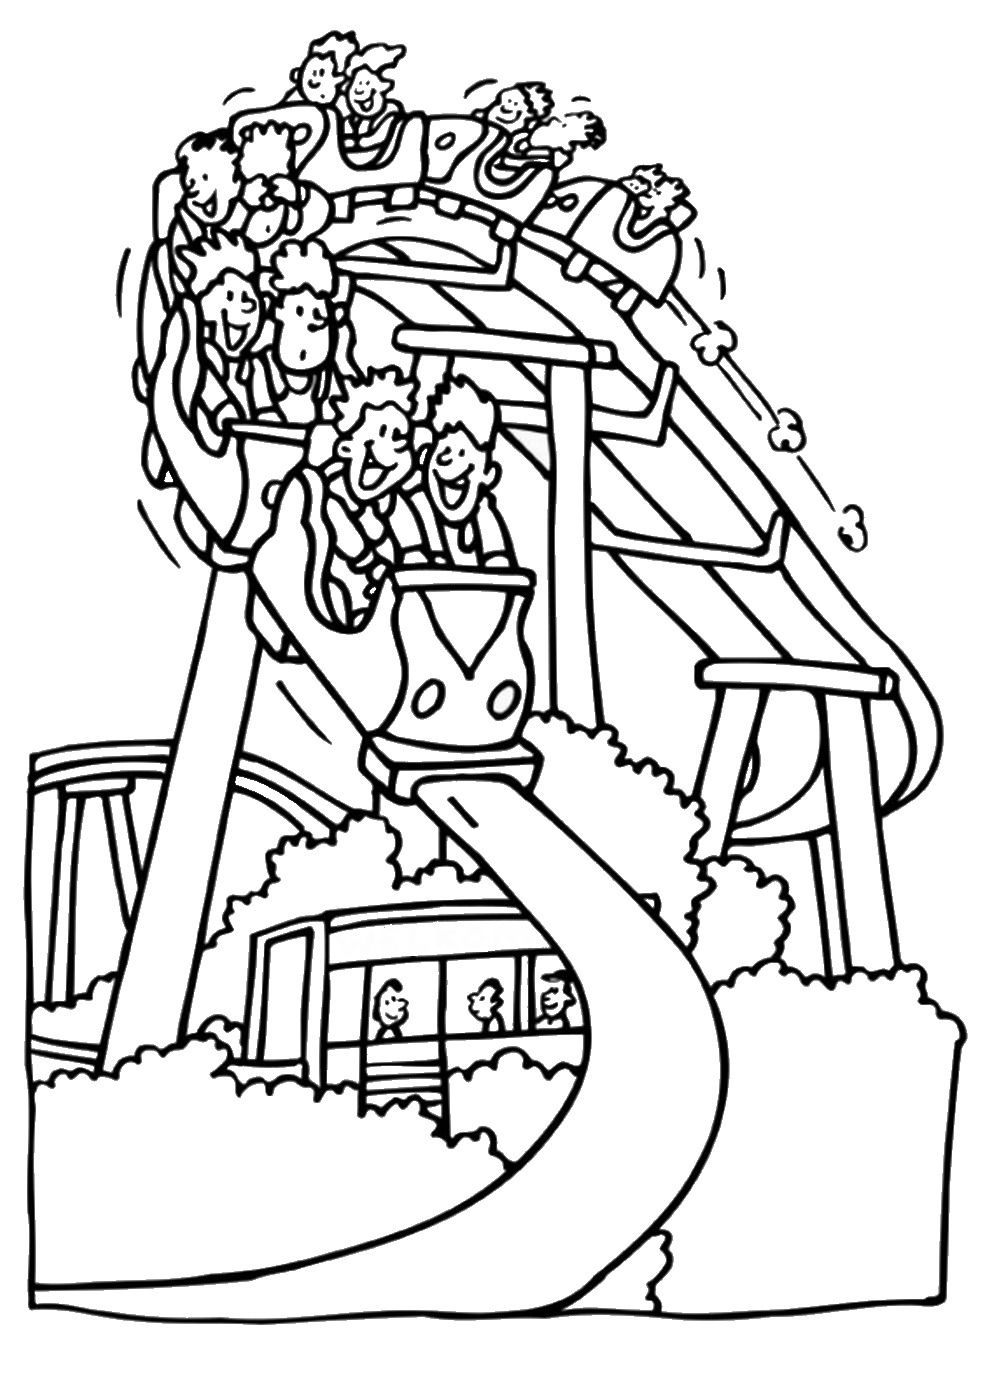 Coaster Coloring Pages Printable Roller 2020 Free Coloring